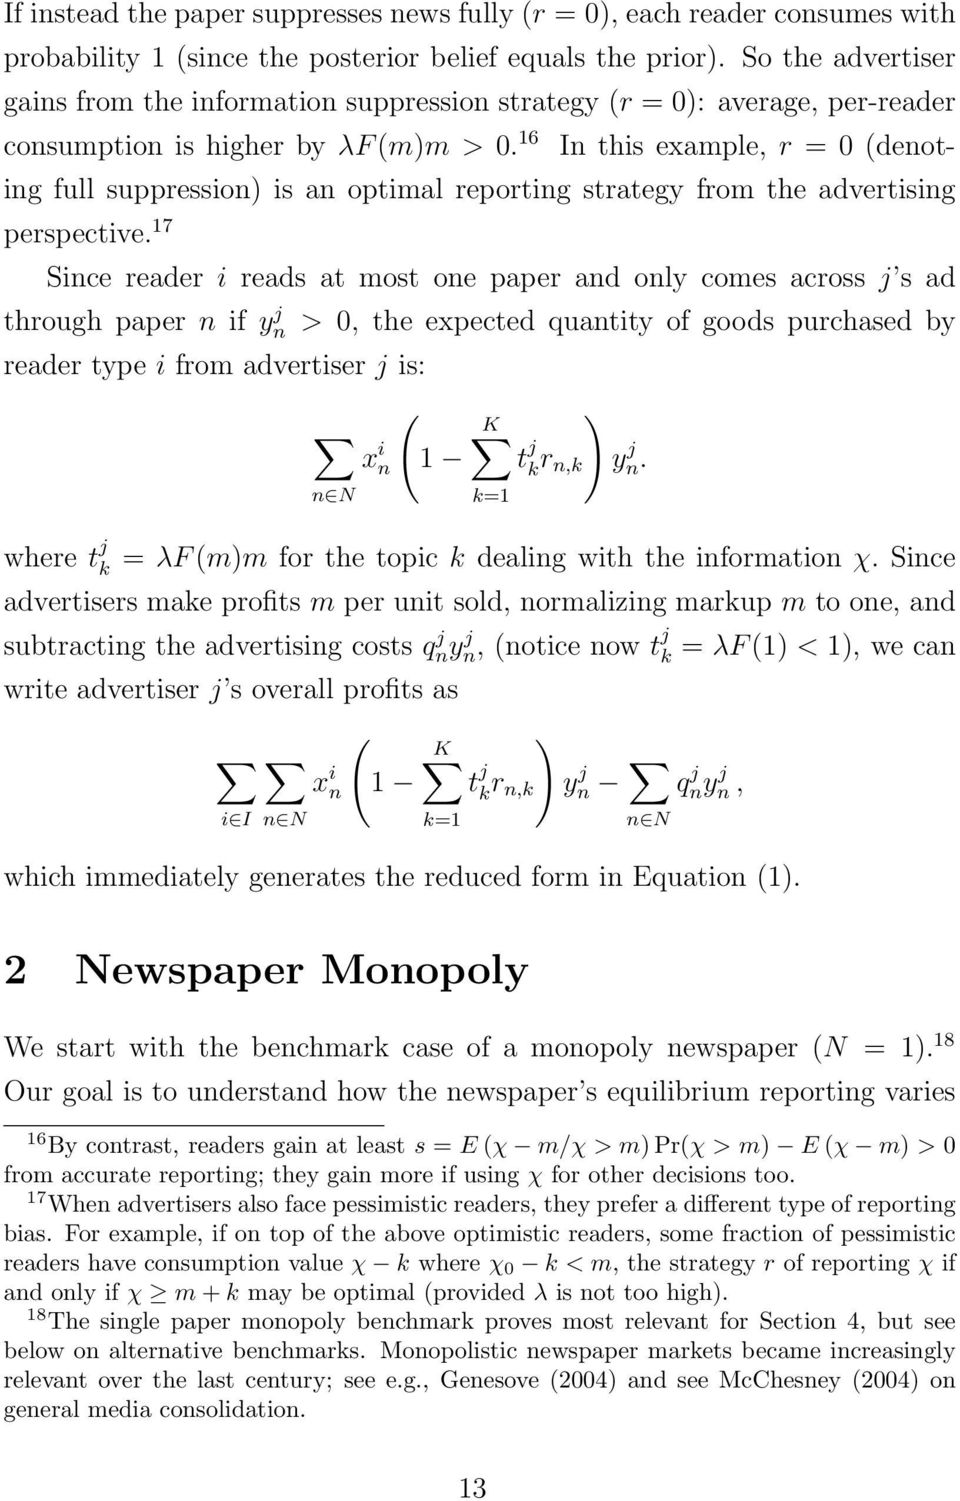 16 In this example, r = 0 (denoting full suppression) is an optimal reporting strategy from the advertising perspective.